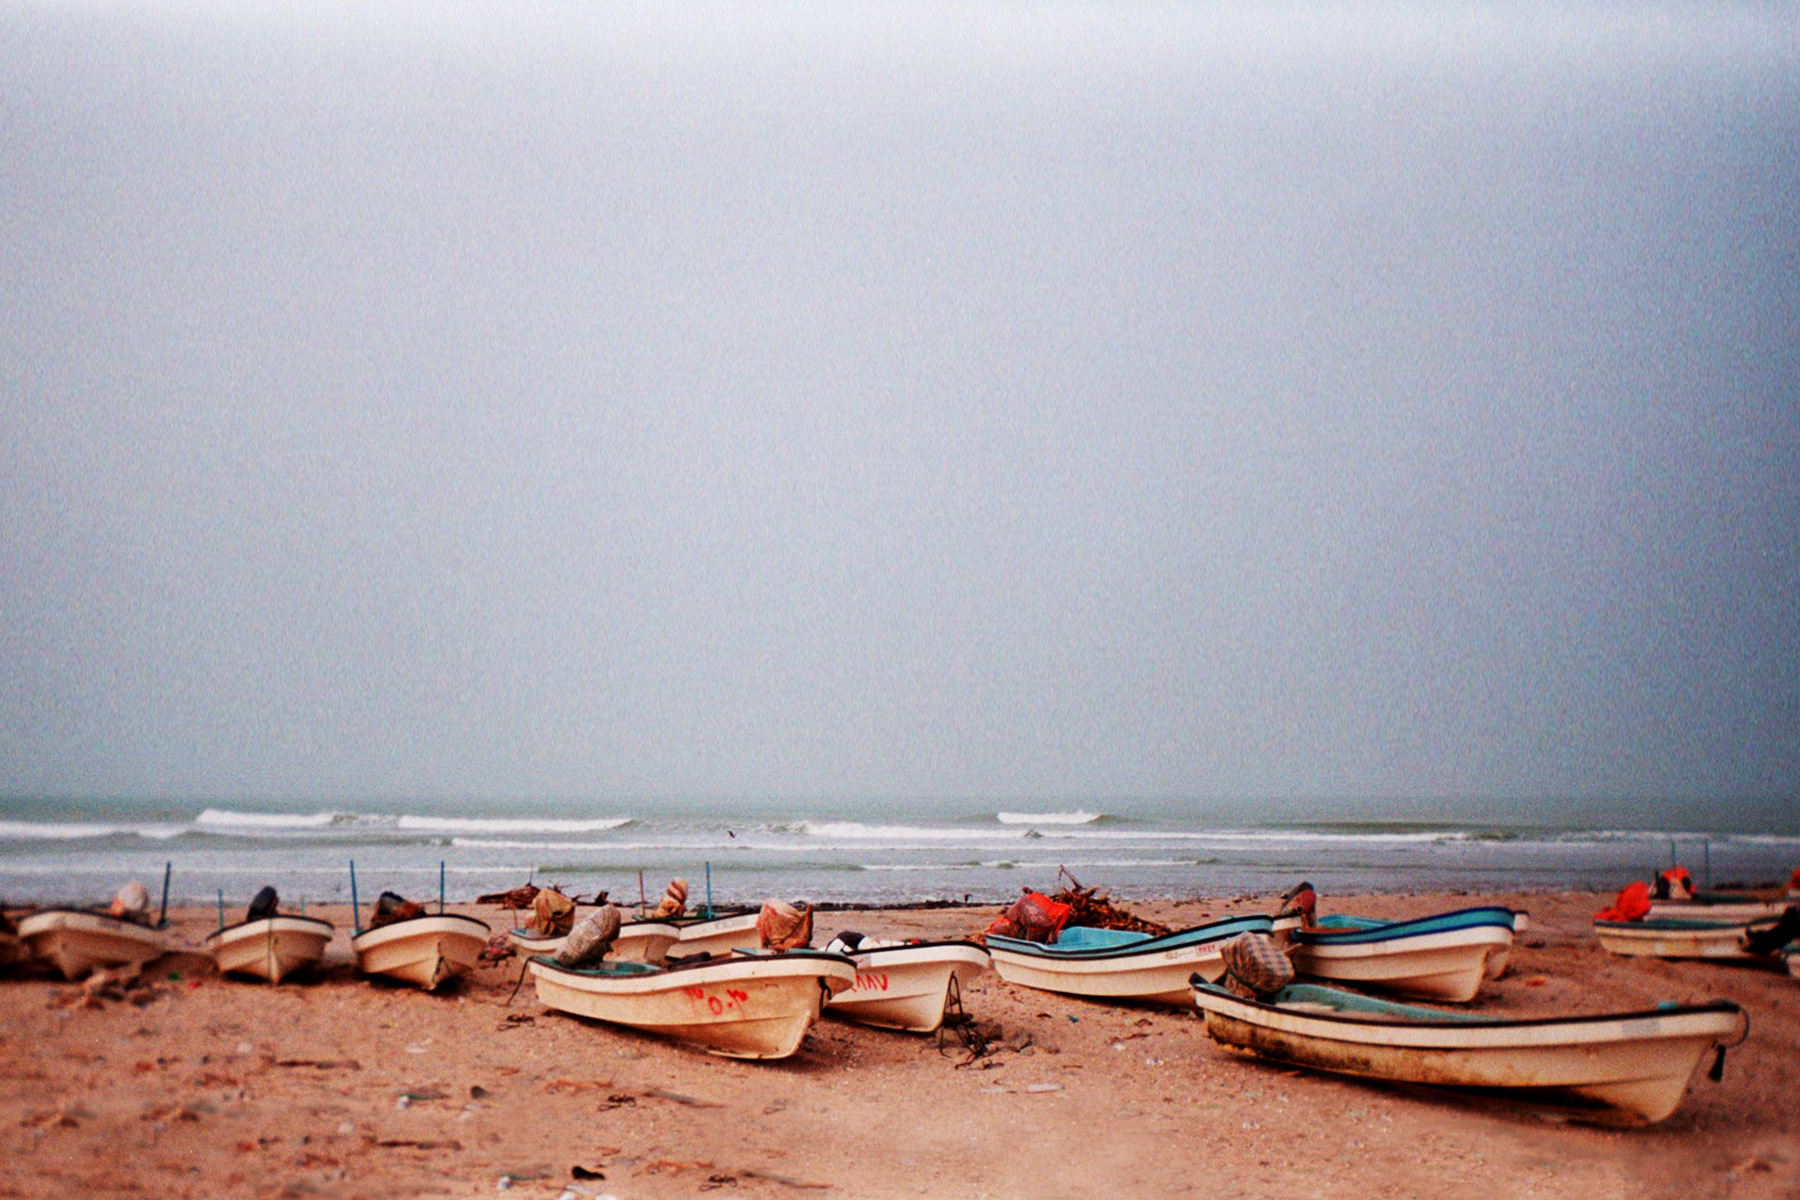 traditional fishing boats pulled up on a beach in oman, with waves breaking behind them